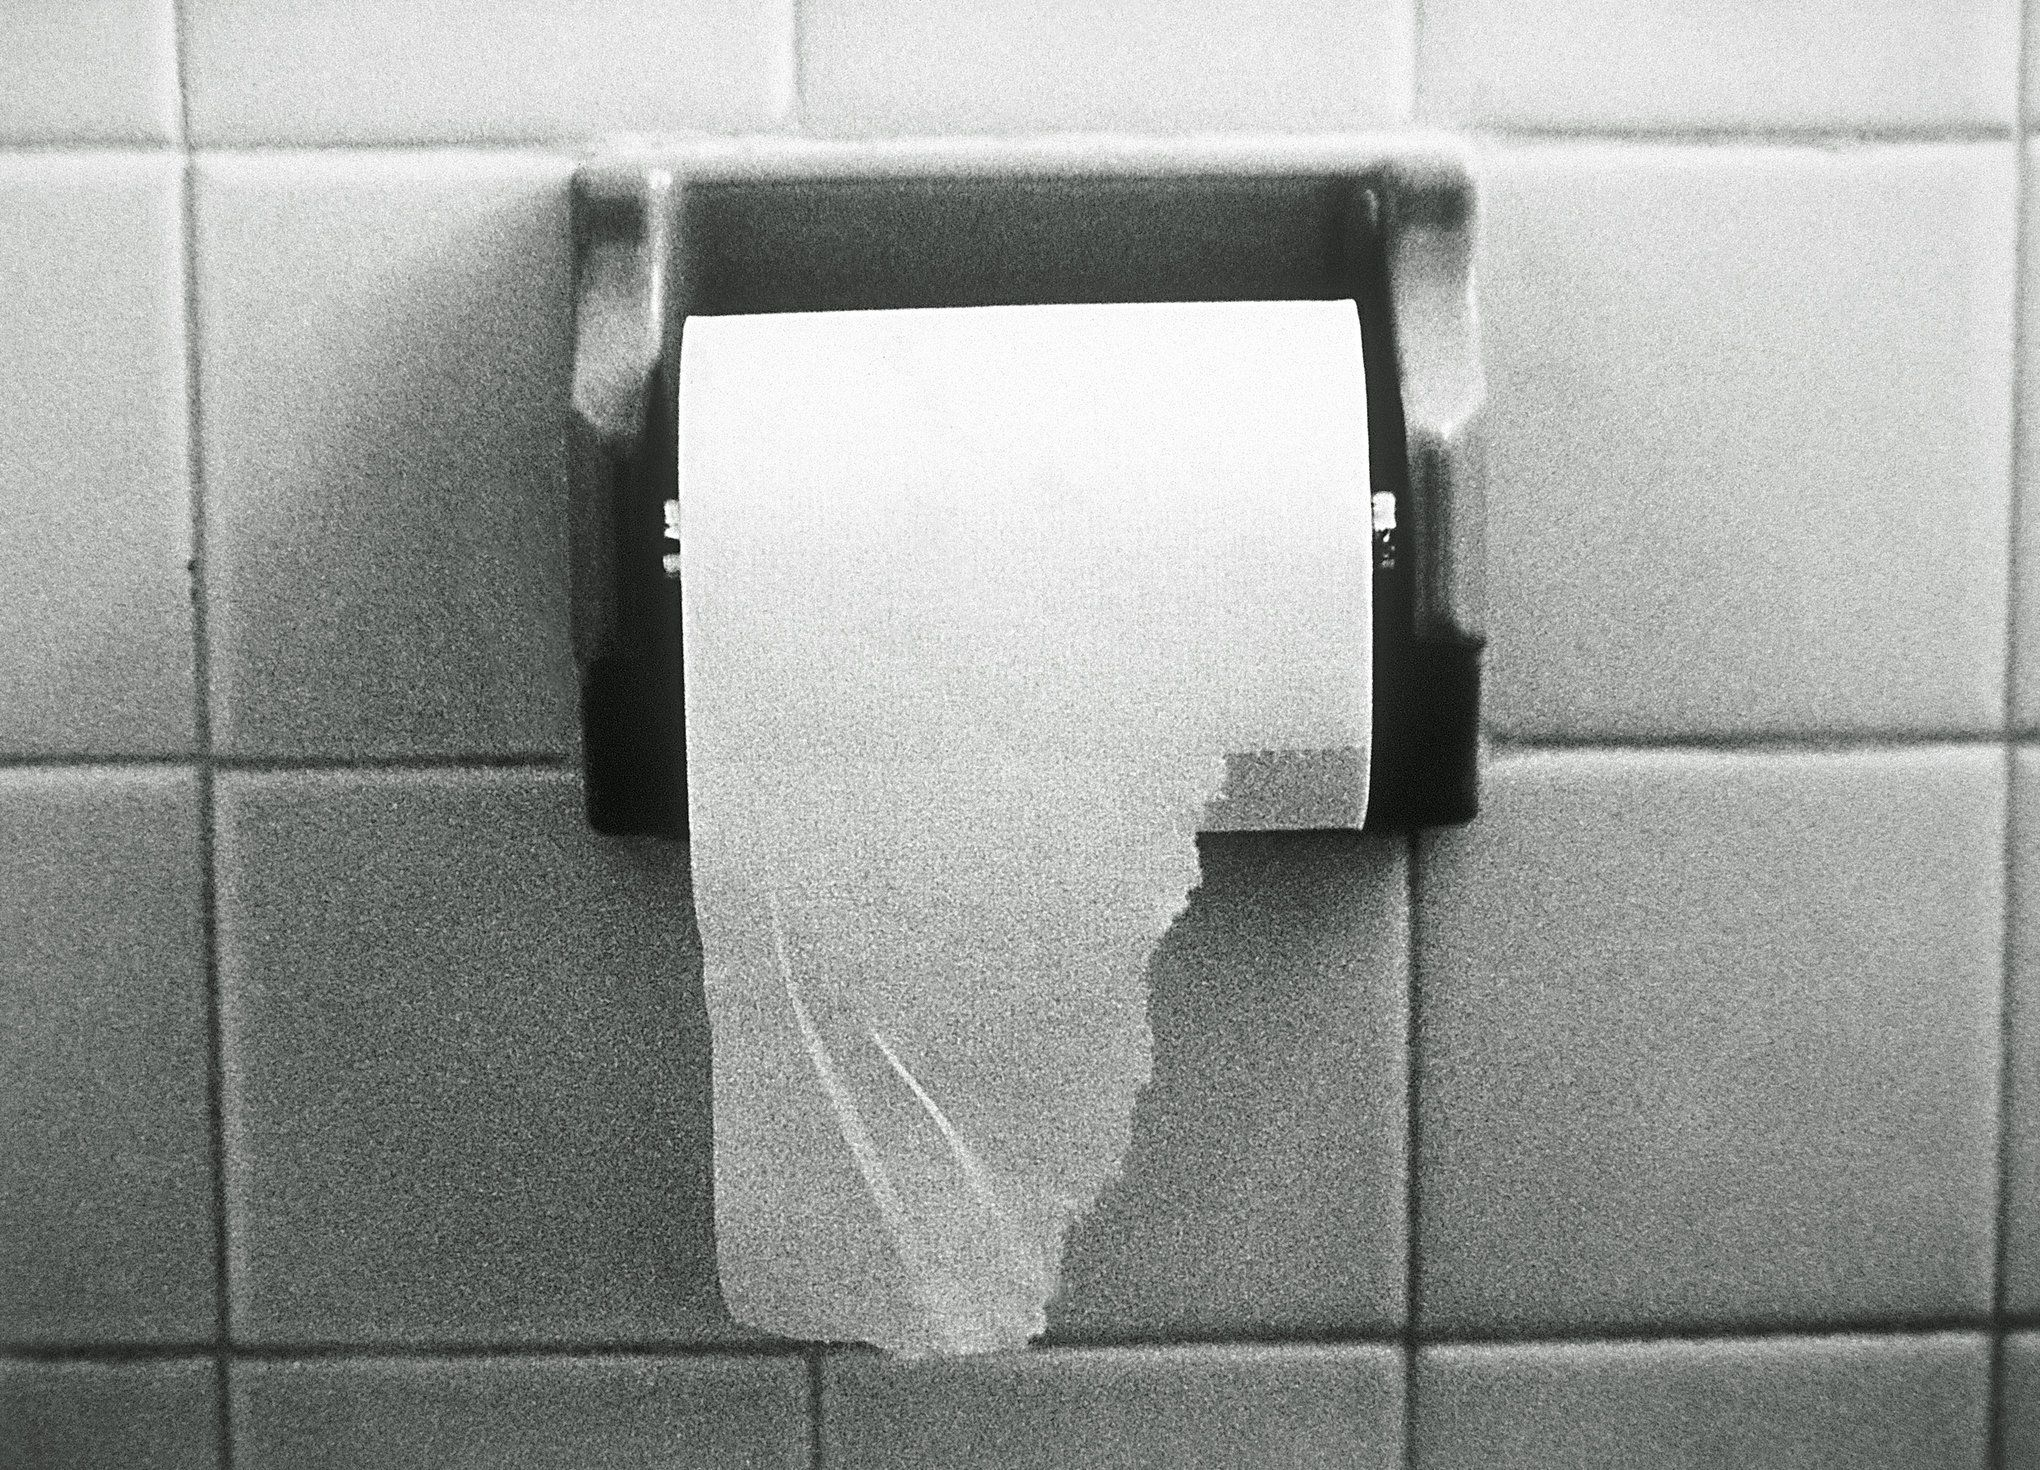 Covering The Toilet Seat With Tissue Paper: Is It Safer For Health Or A Hygiene